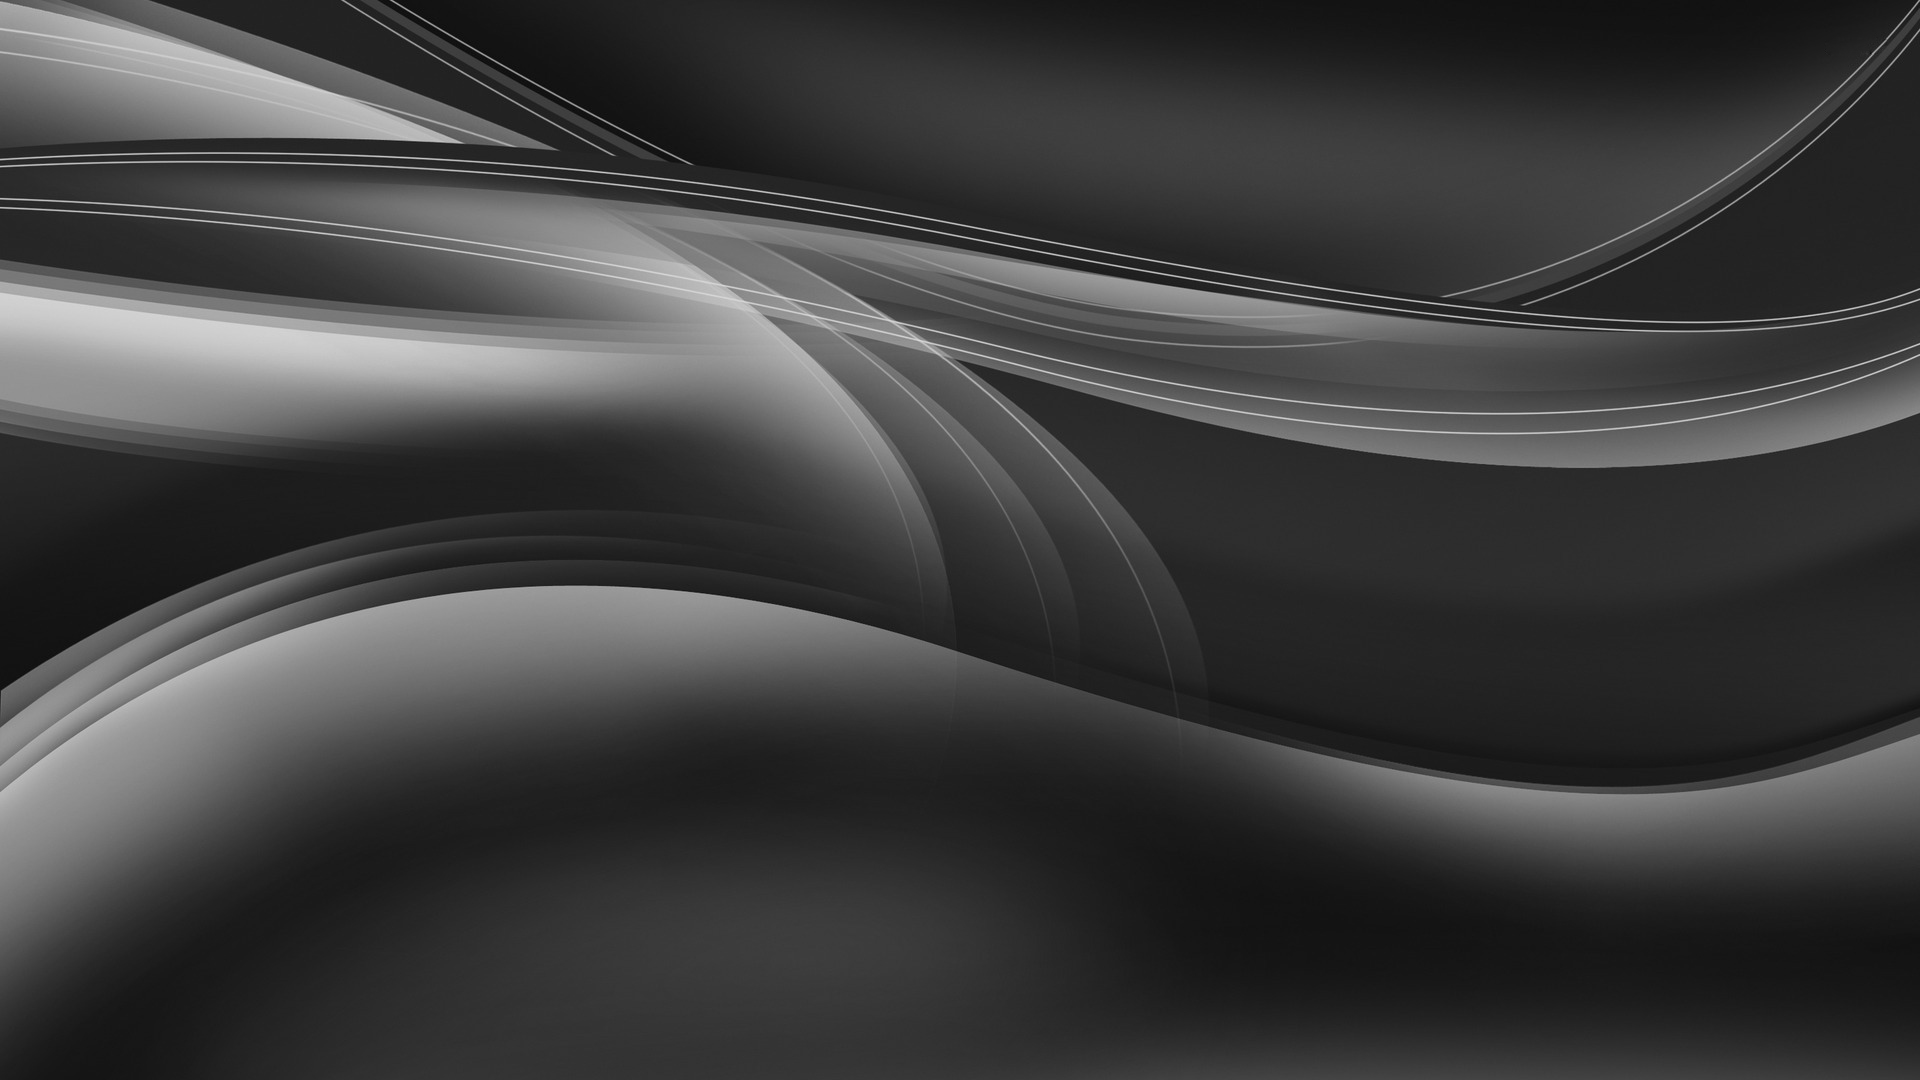 Silver-curves-HD-abstract-wallpaper